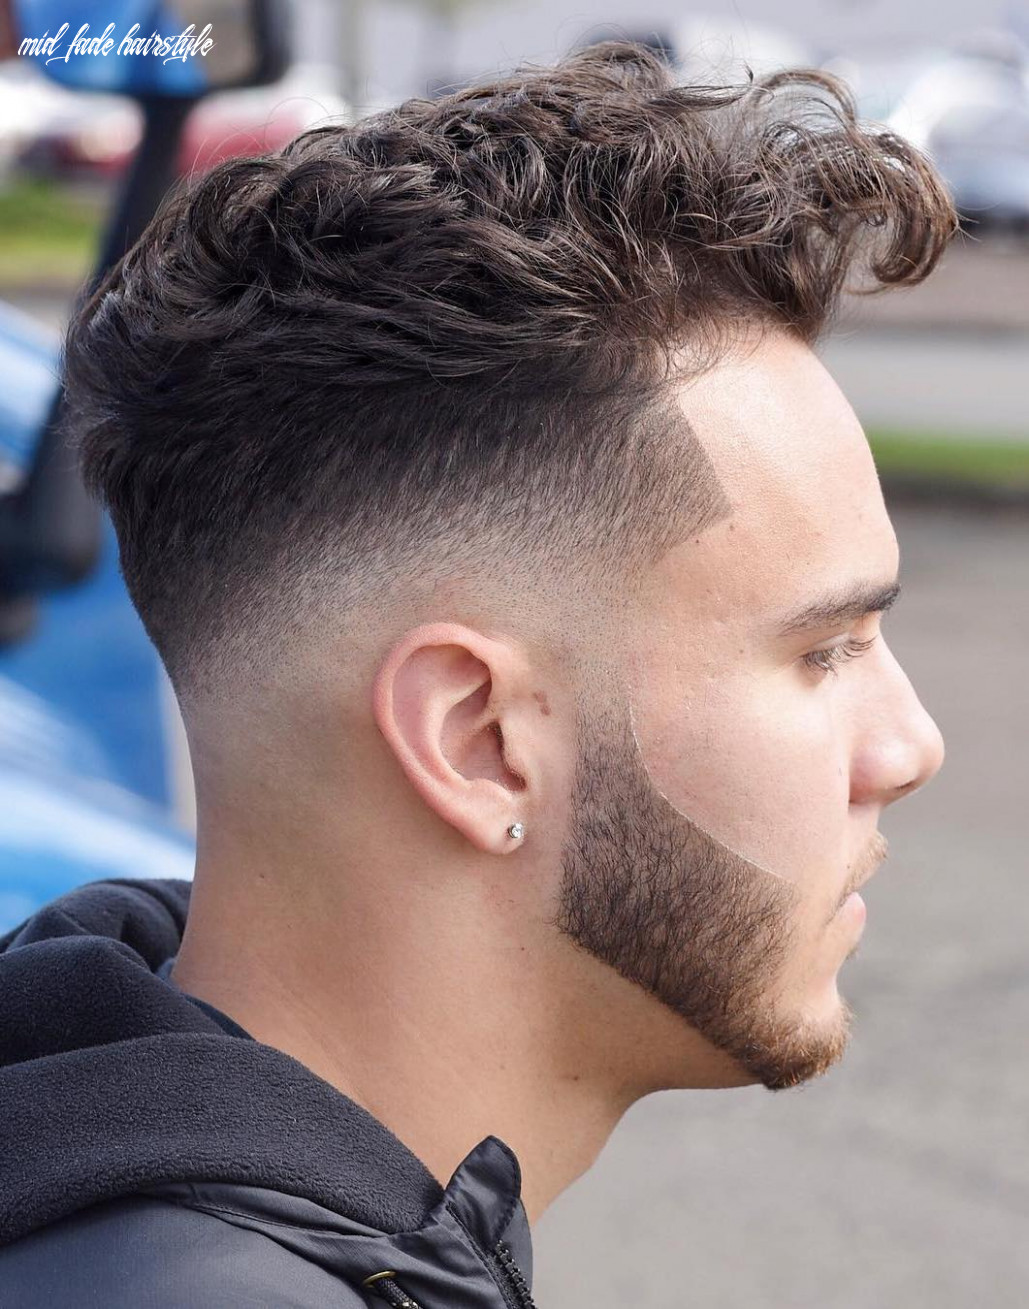 8 the most fashionable mid fade haircuts for men mid fade hairstyle